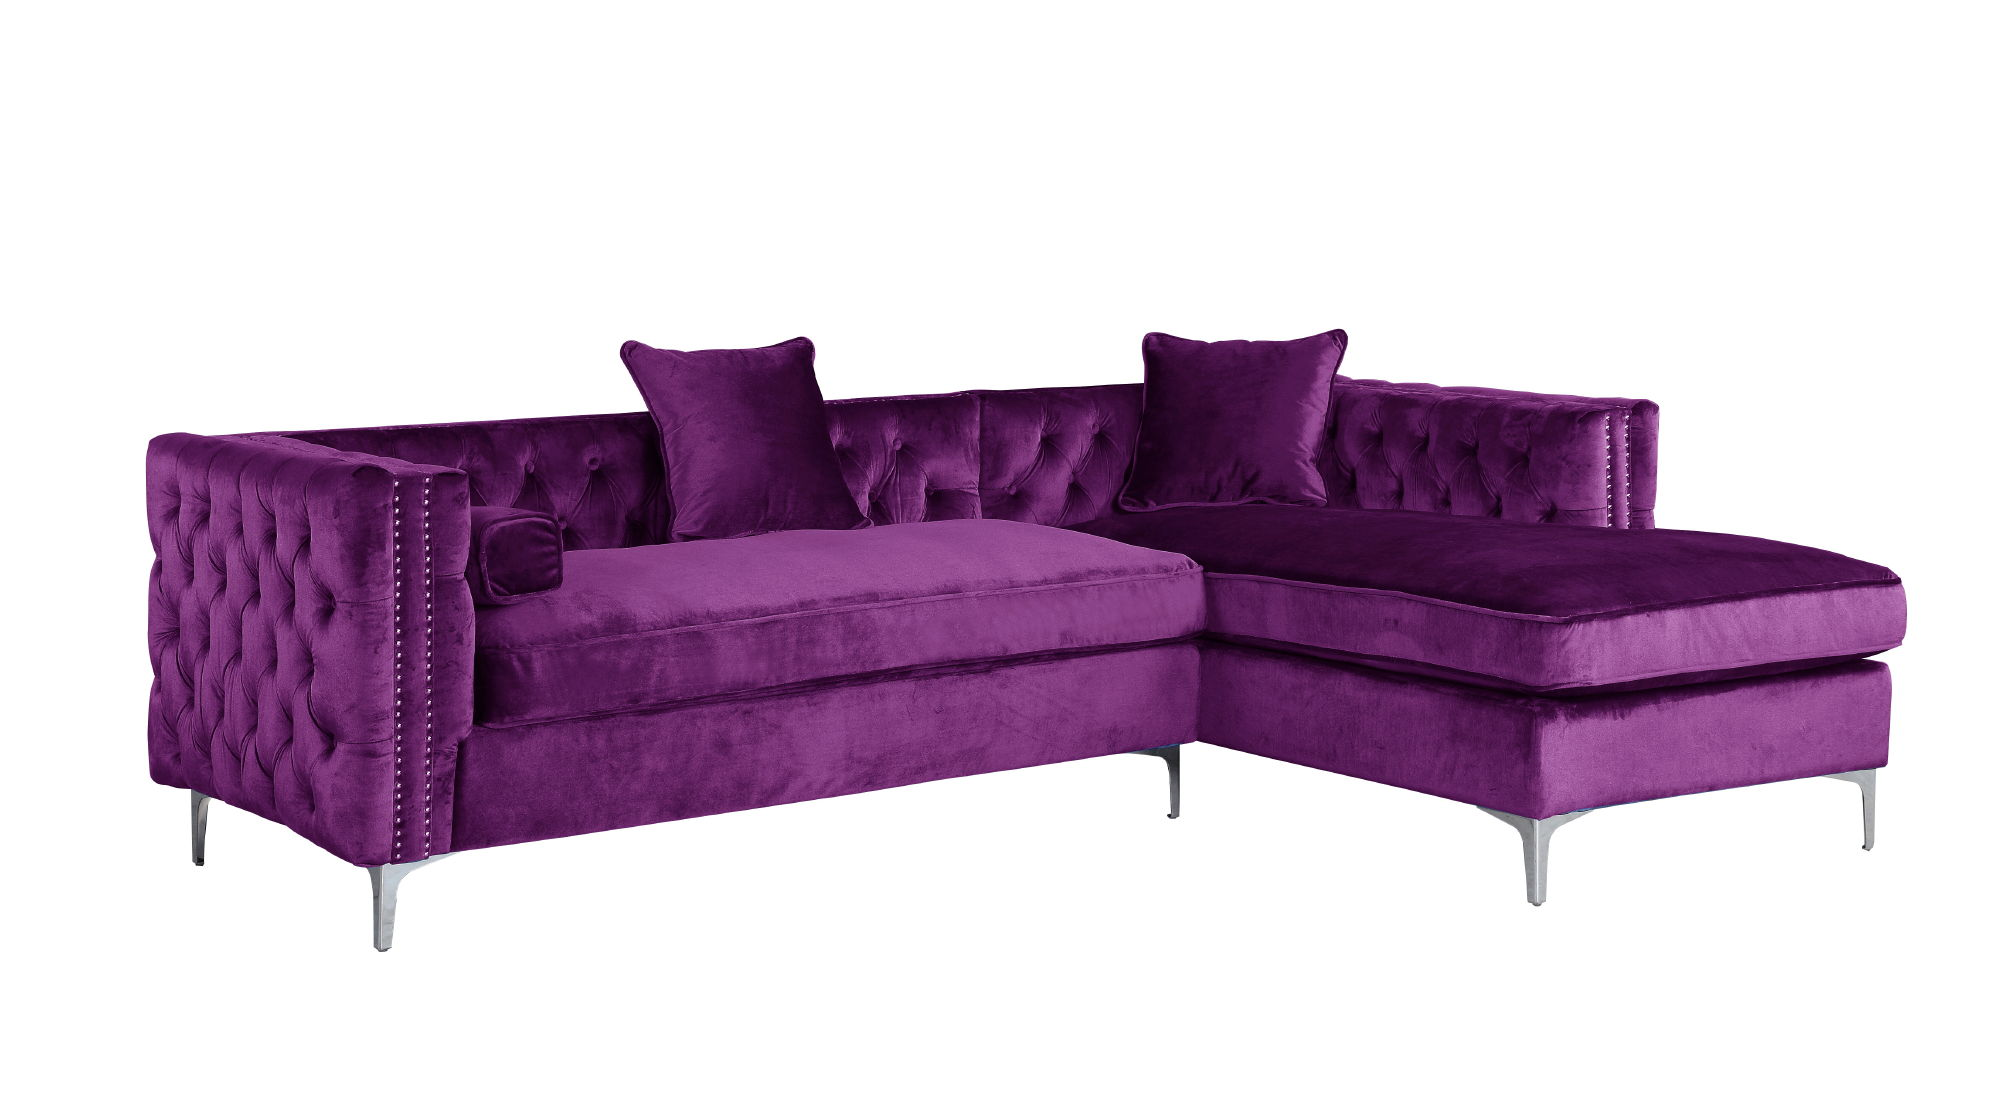 Pleasant Chic Home Da Vinci Purple Velvet Right Facing Sectional Sofa With 3 Pillows Ncnpc Chair Design For Home Ncnpcorg